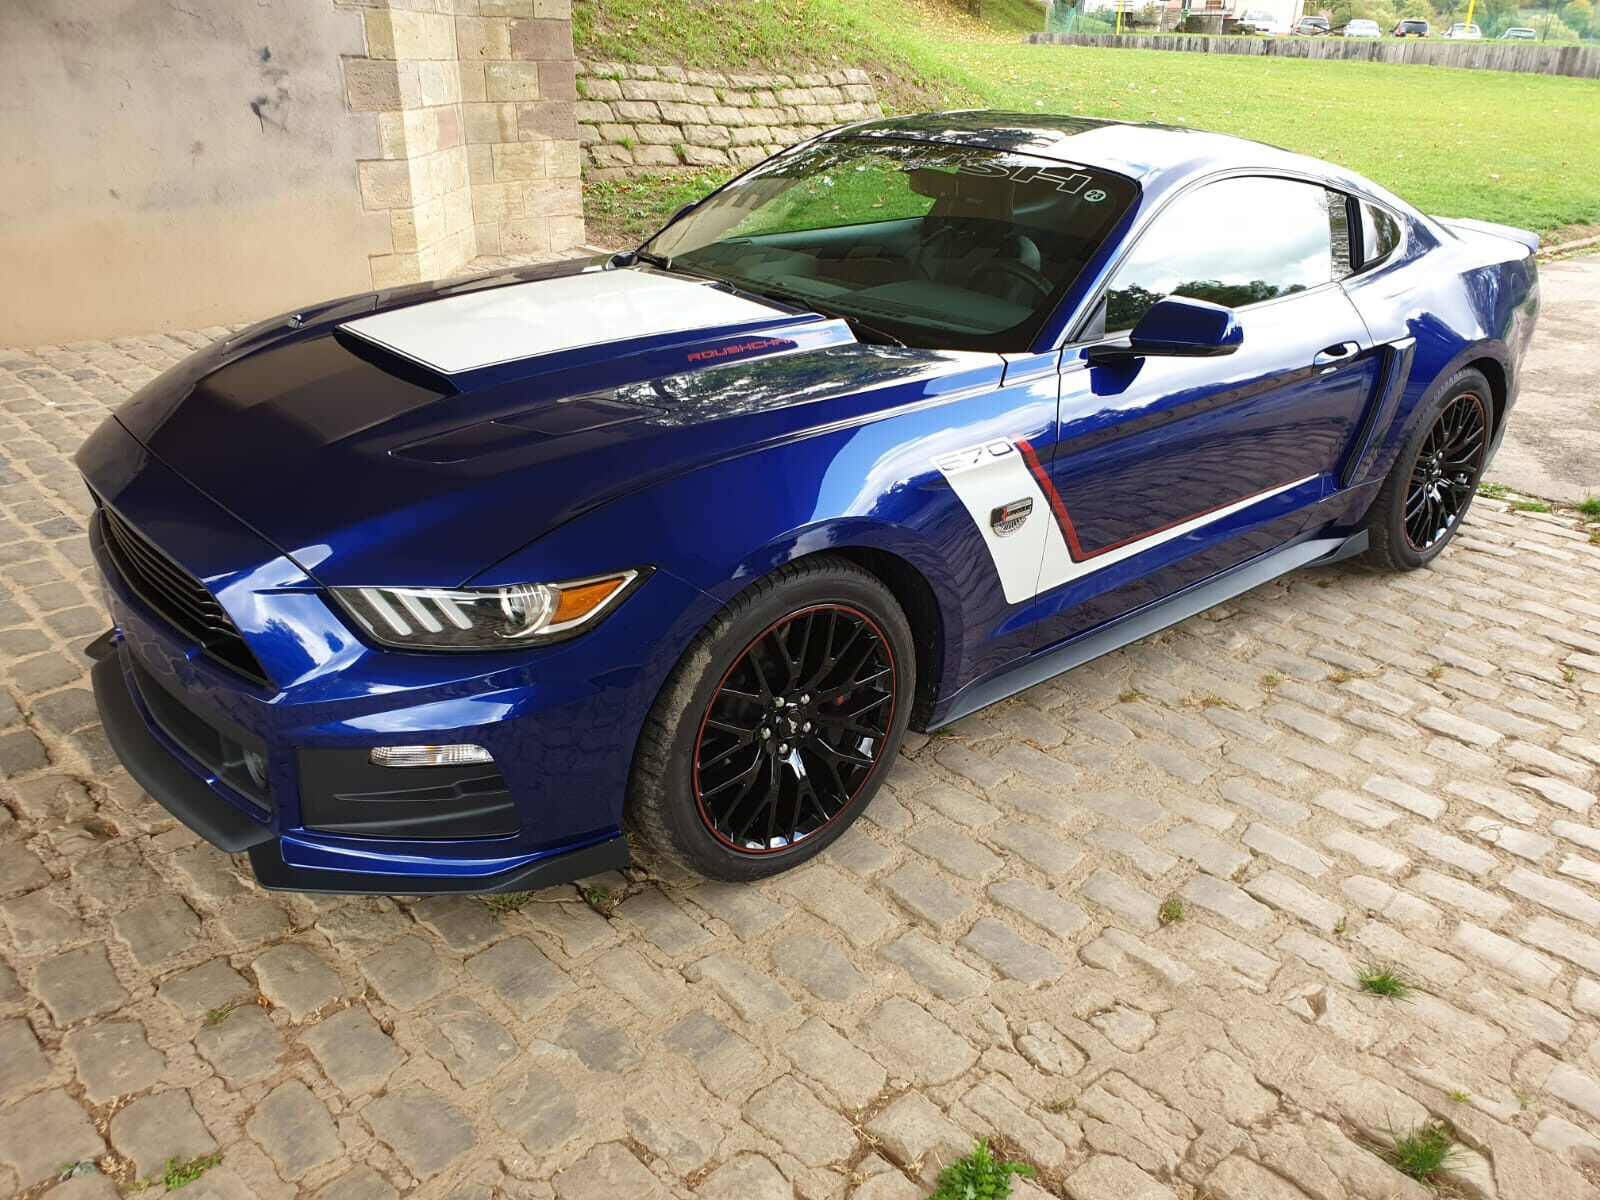 Ford Mustang 5.0 S/C Roush Warrior